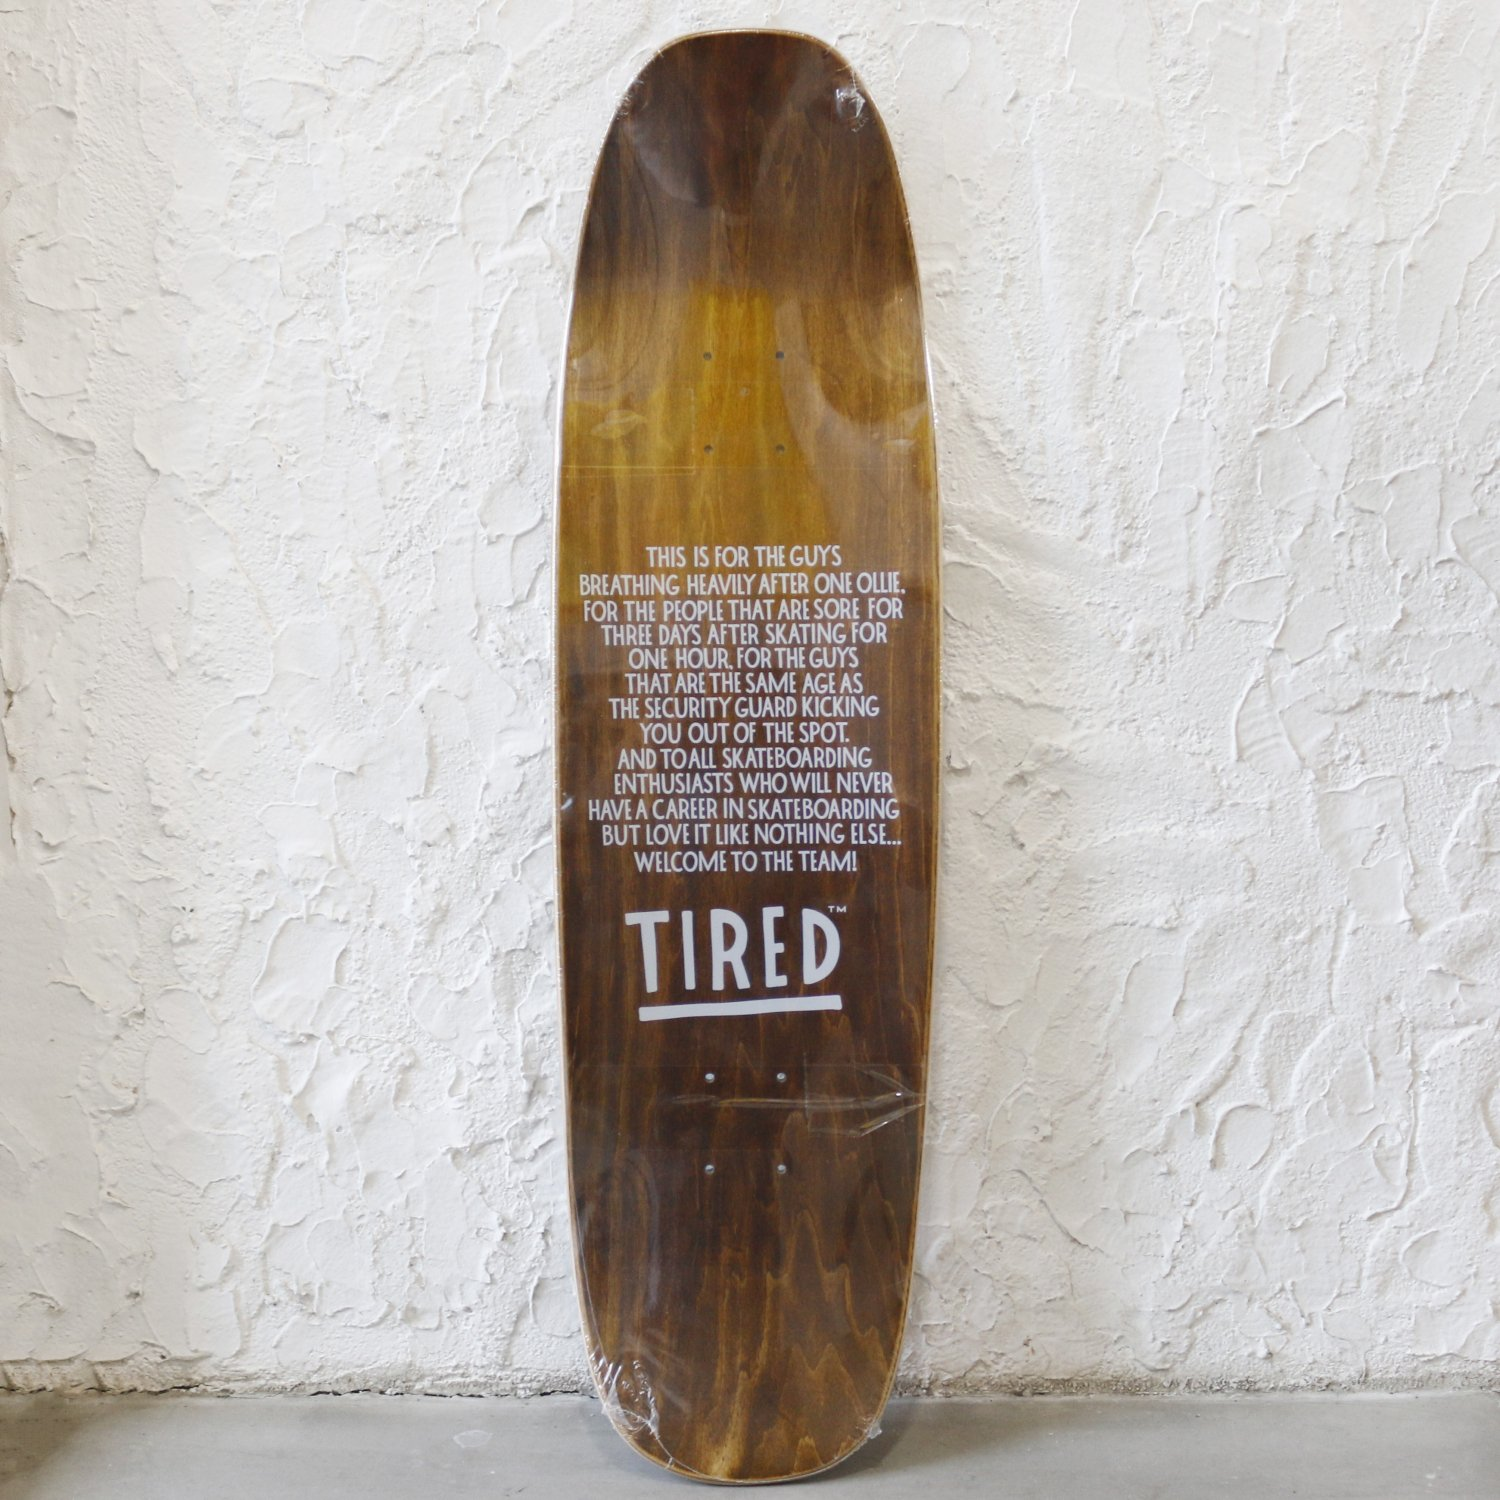 <img class='new_mark_img1' src='https://img.shop-pro.jp/img/new/icons8.gif' style='border:none;display:inline;margin:0px;padding:0px;width:auto;' />Tired タイレッド / LONG T LOGO SKATEBOARD